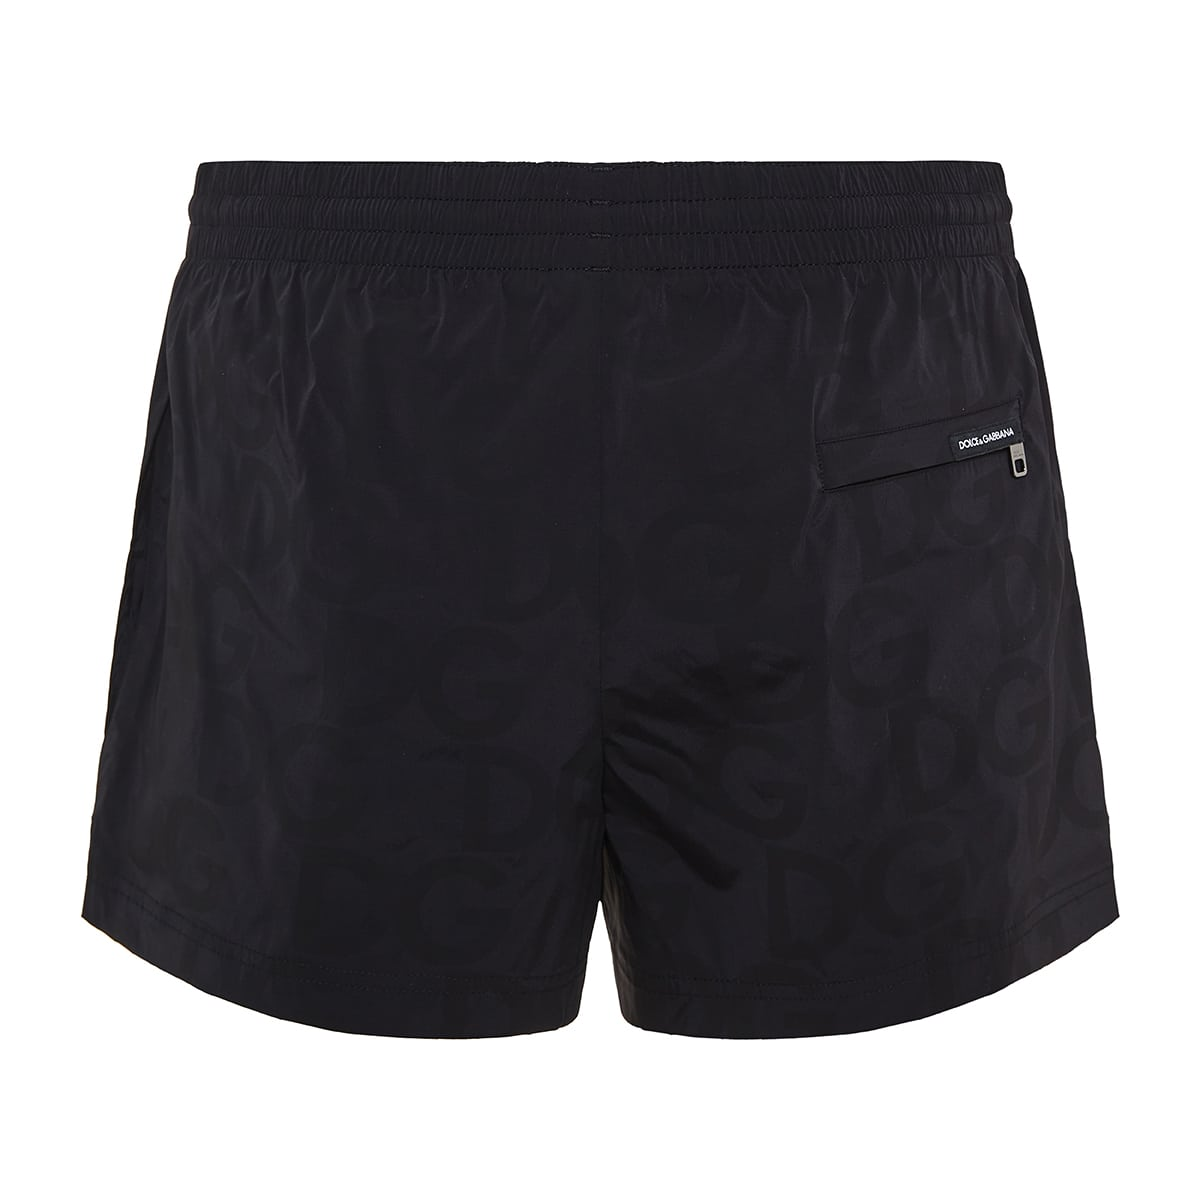 DG jacquard swim shorts